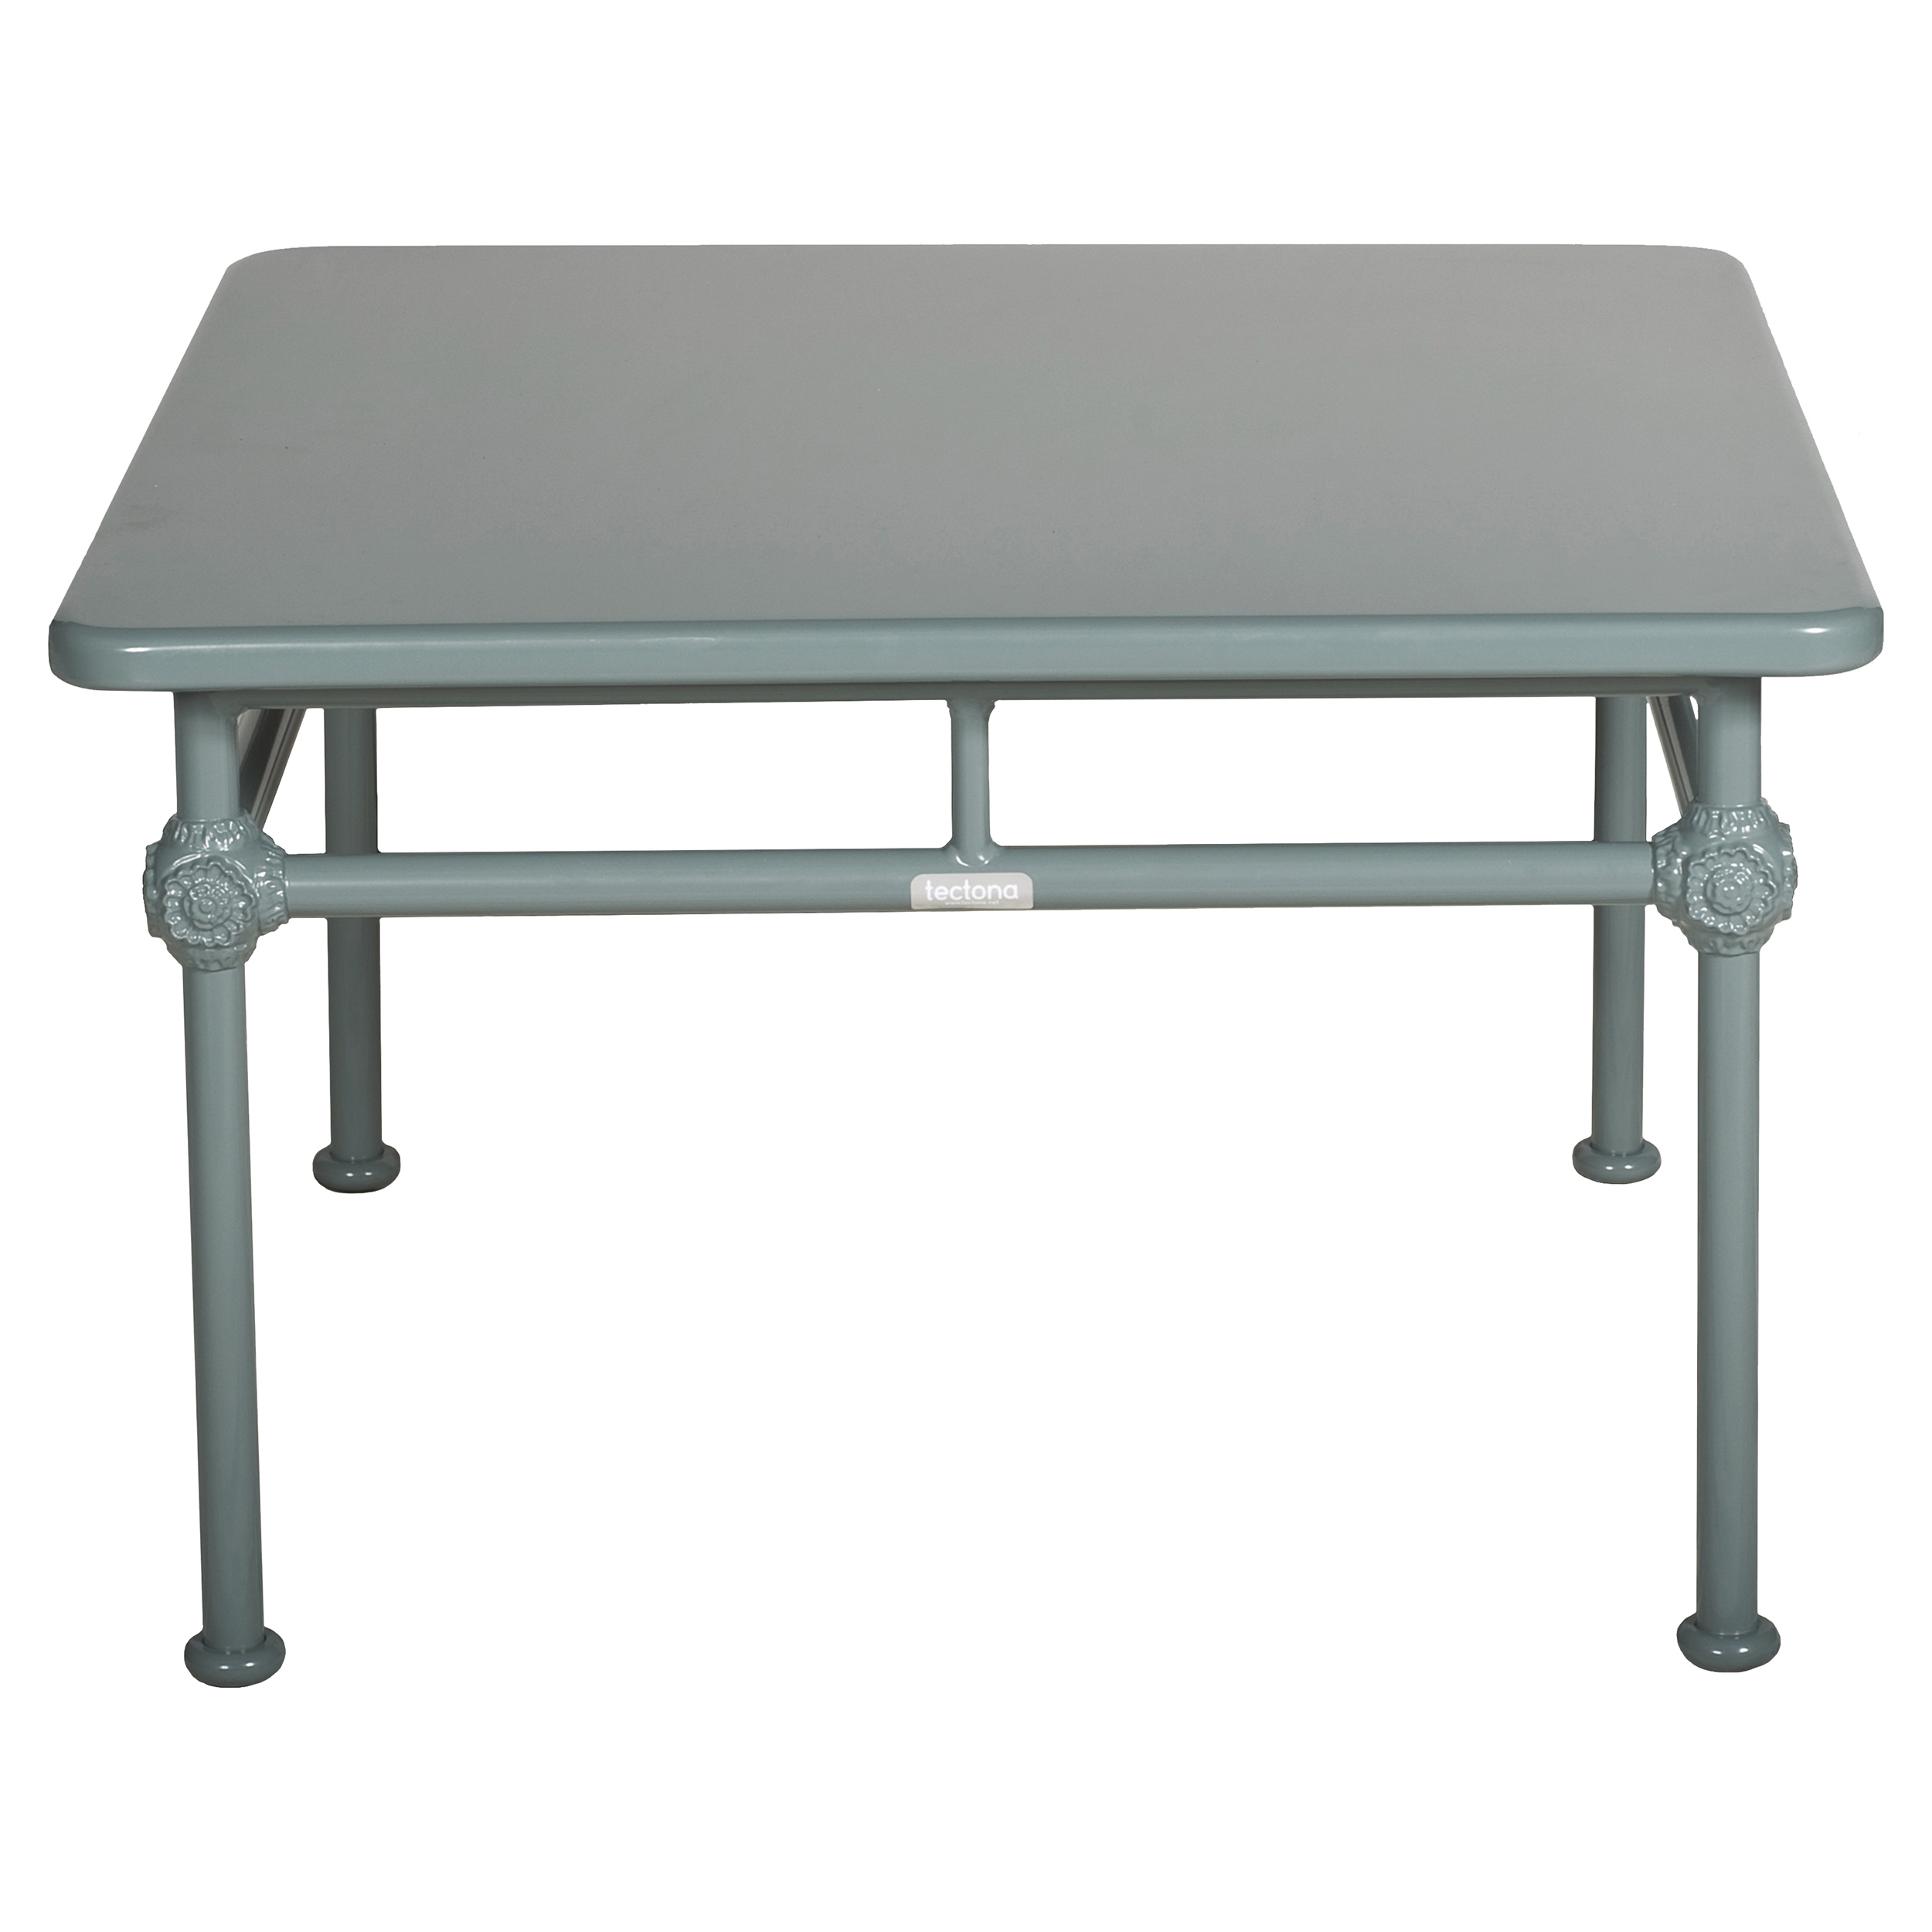 Tectona French Country Grey Blue Aluminum Square Outdoor Coffee Table